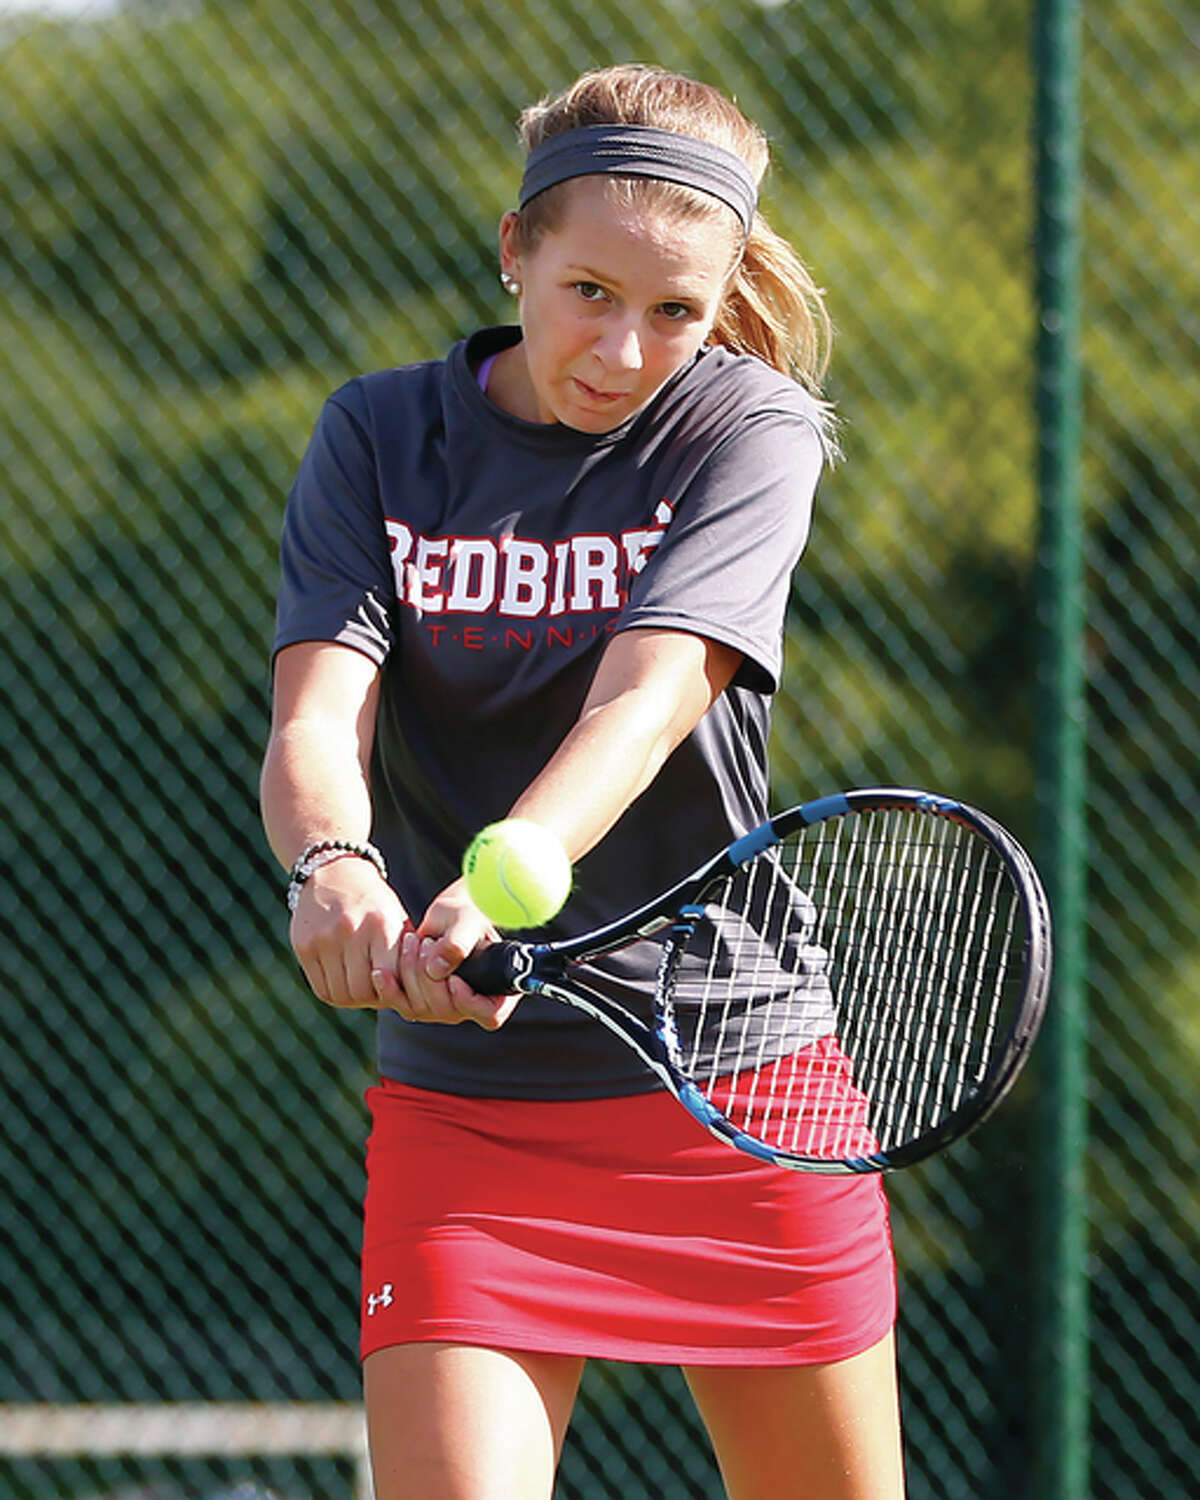 Alton's Abby Fischer, shown hitting a backhand during a match last season, and her Redbirds teammates will be in Belleville on Friday for opening rounds of the two-day Belleville East Class 2A Sectional. Alton and Edwardsville will be competing at East, while the area's smaller schools will play at the Triad Class 1A Sectional in Troy. This is the first season for two-class tennis in Illinois.